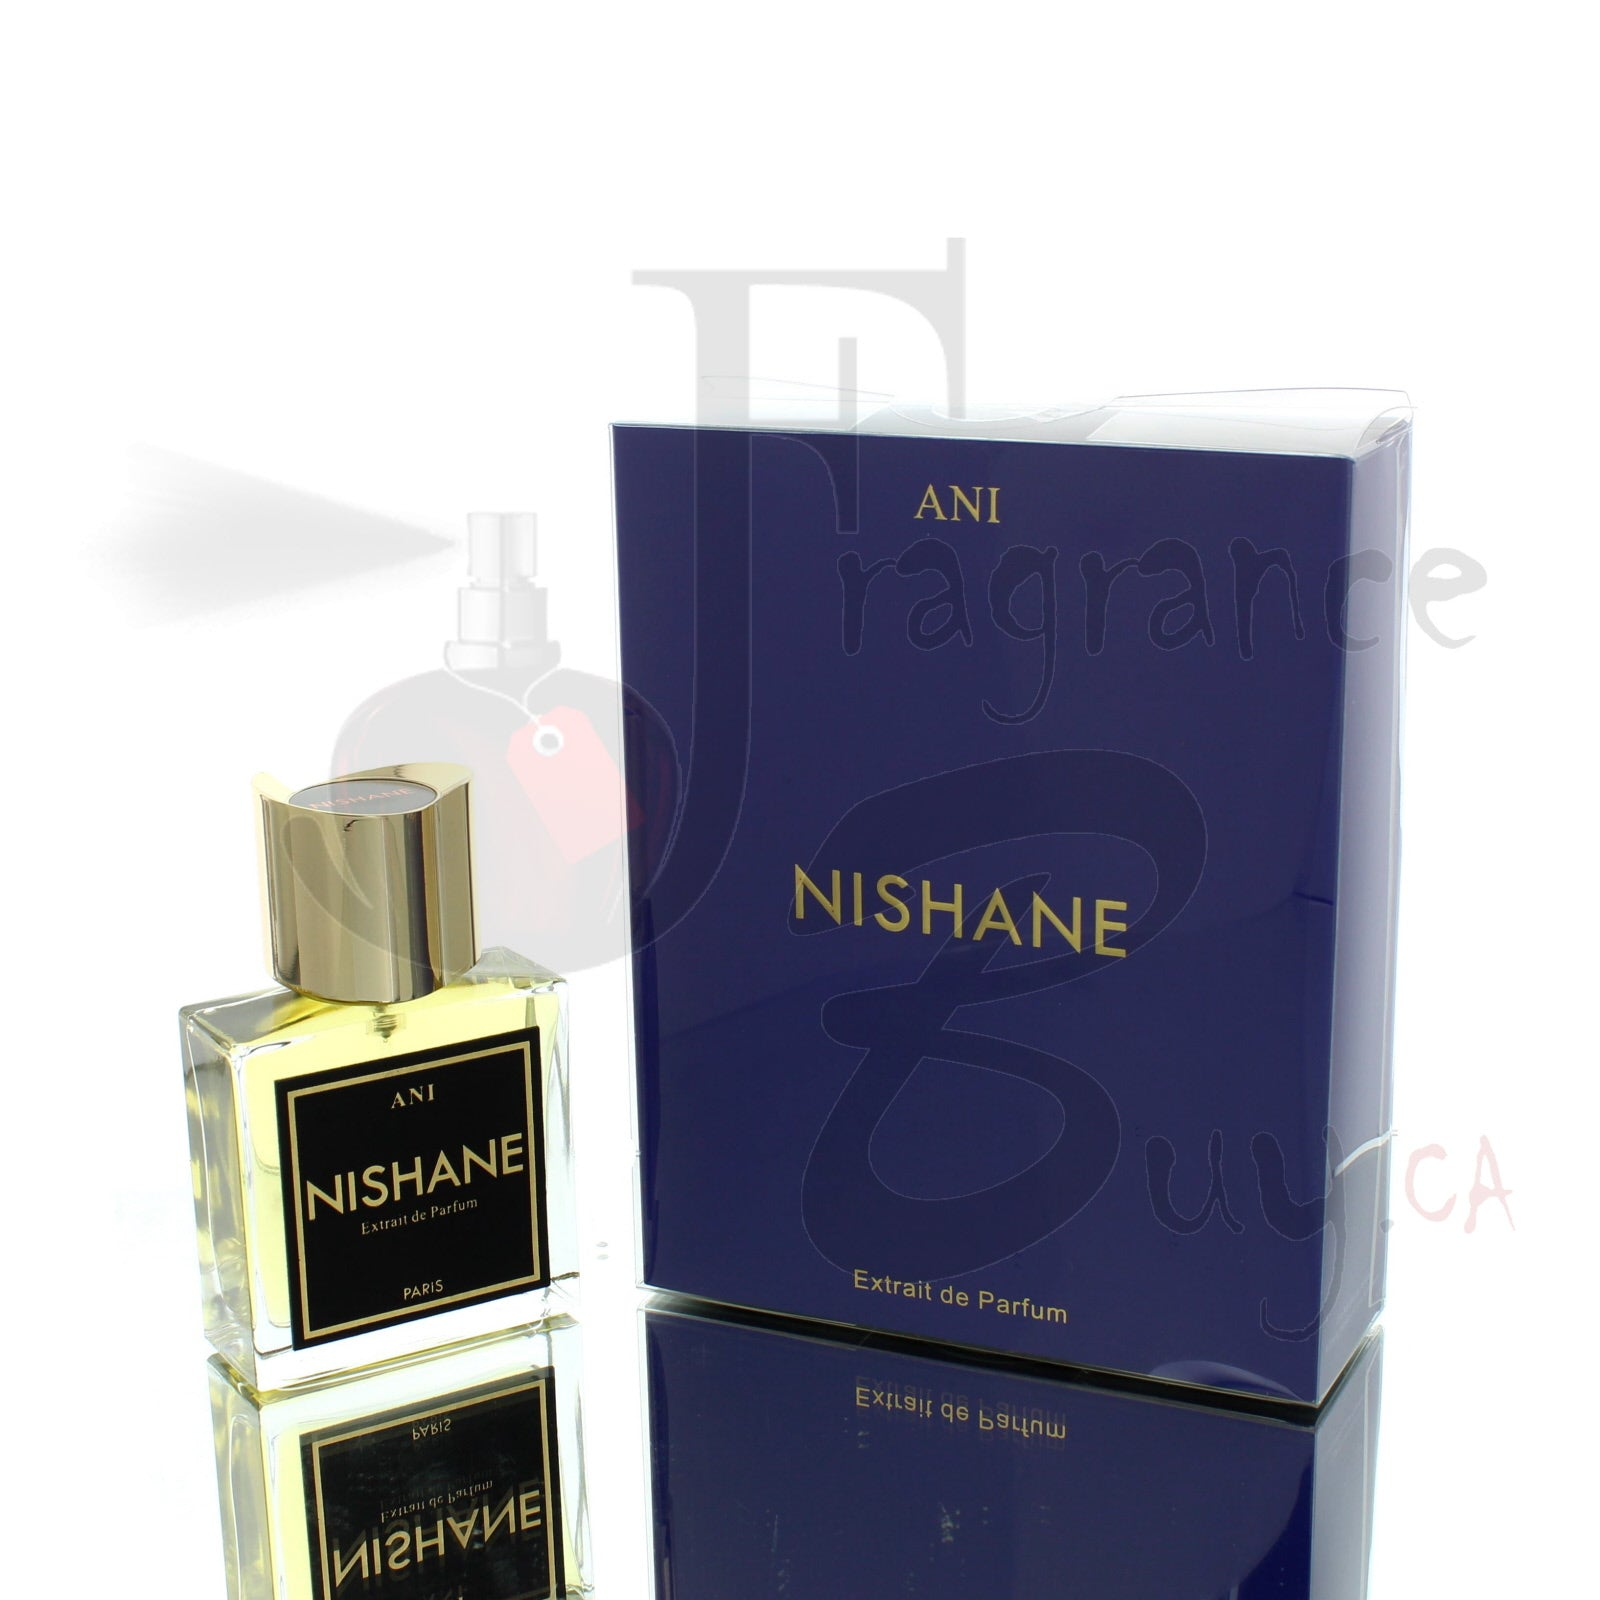 Nishane Ani For Man/Woman